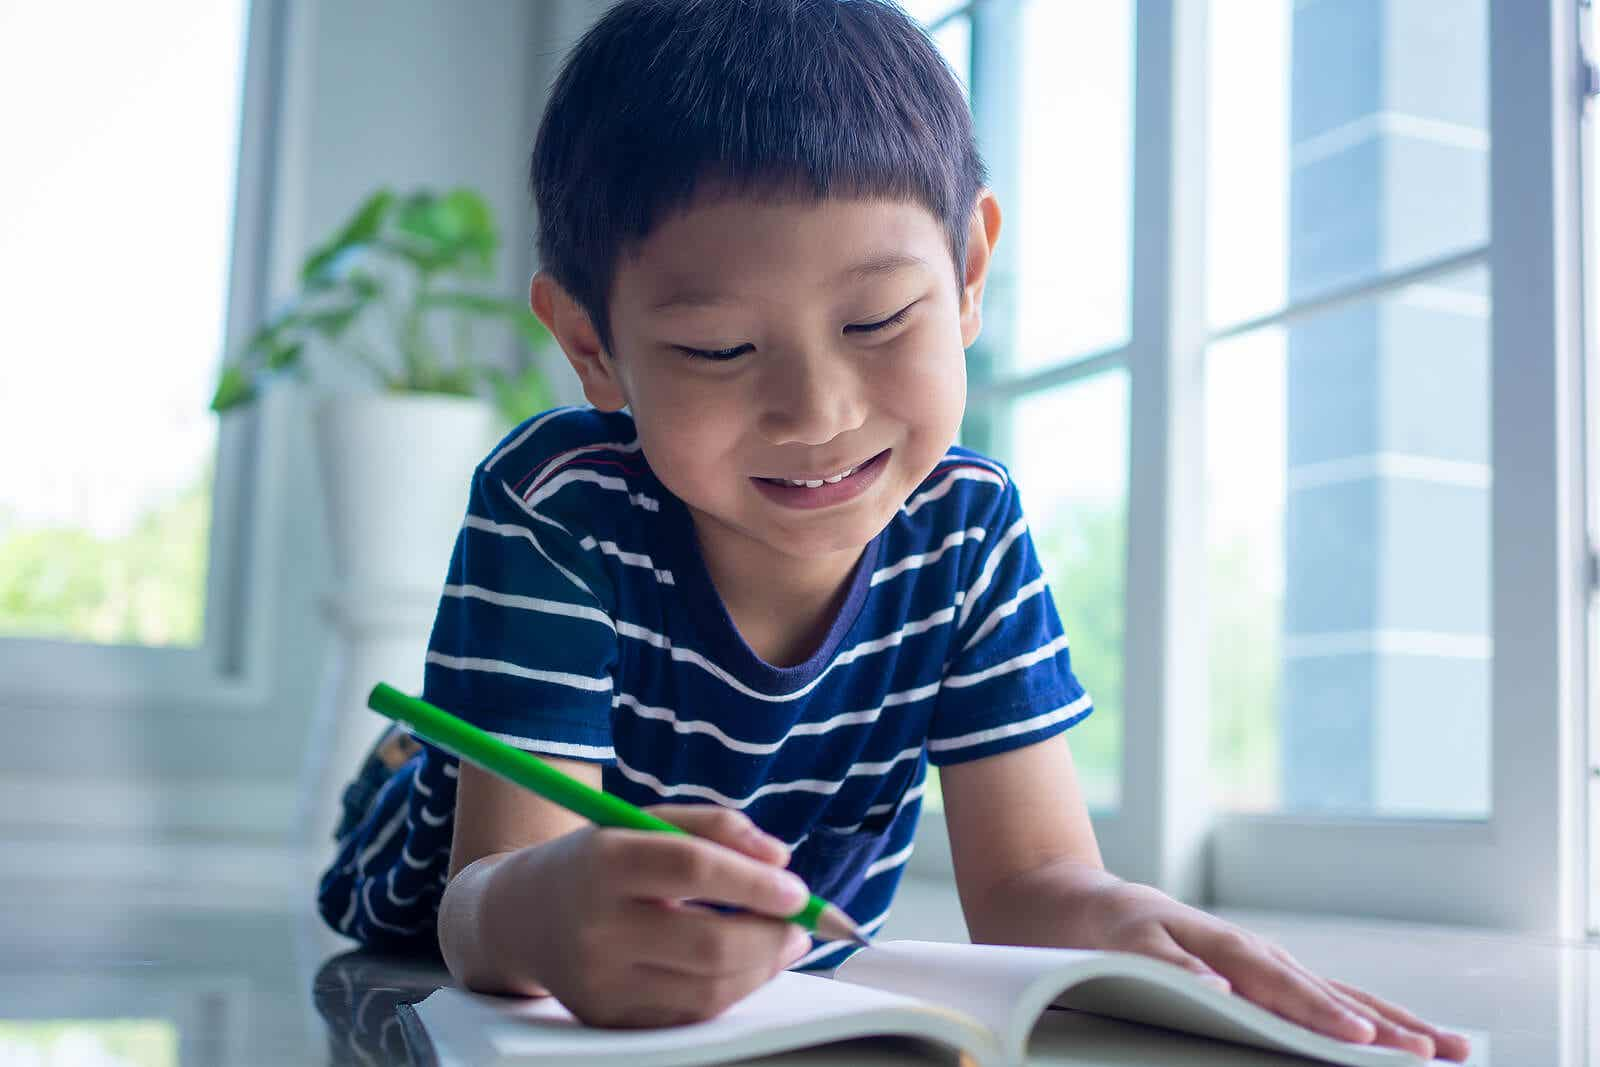 A child writing in a blank notebook.